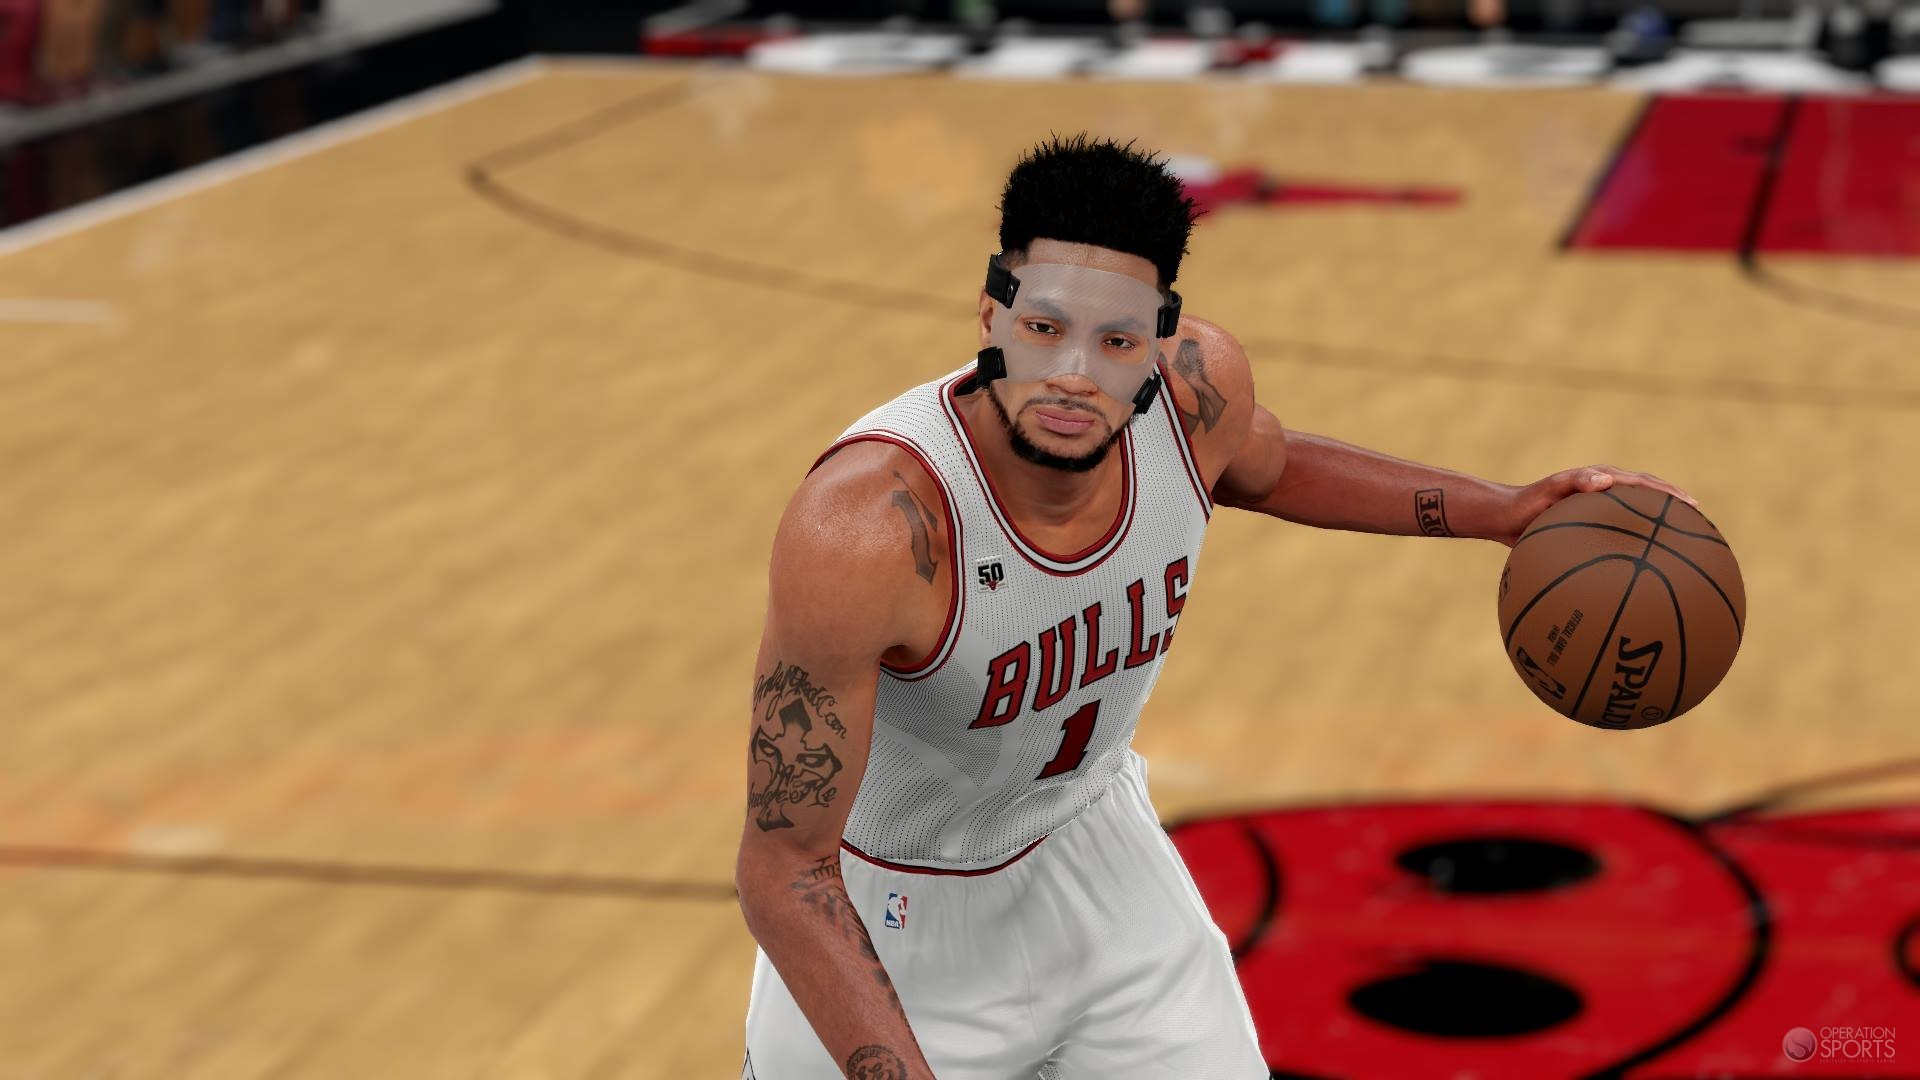 1920x1080 NBA 2K16 Adds Mask For Derrick Rose & Clippers Black Alternate Uniforms